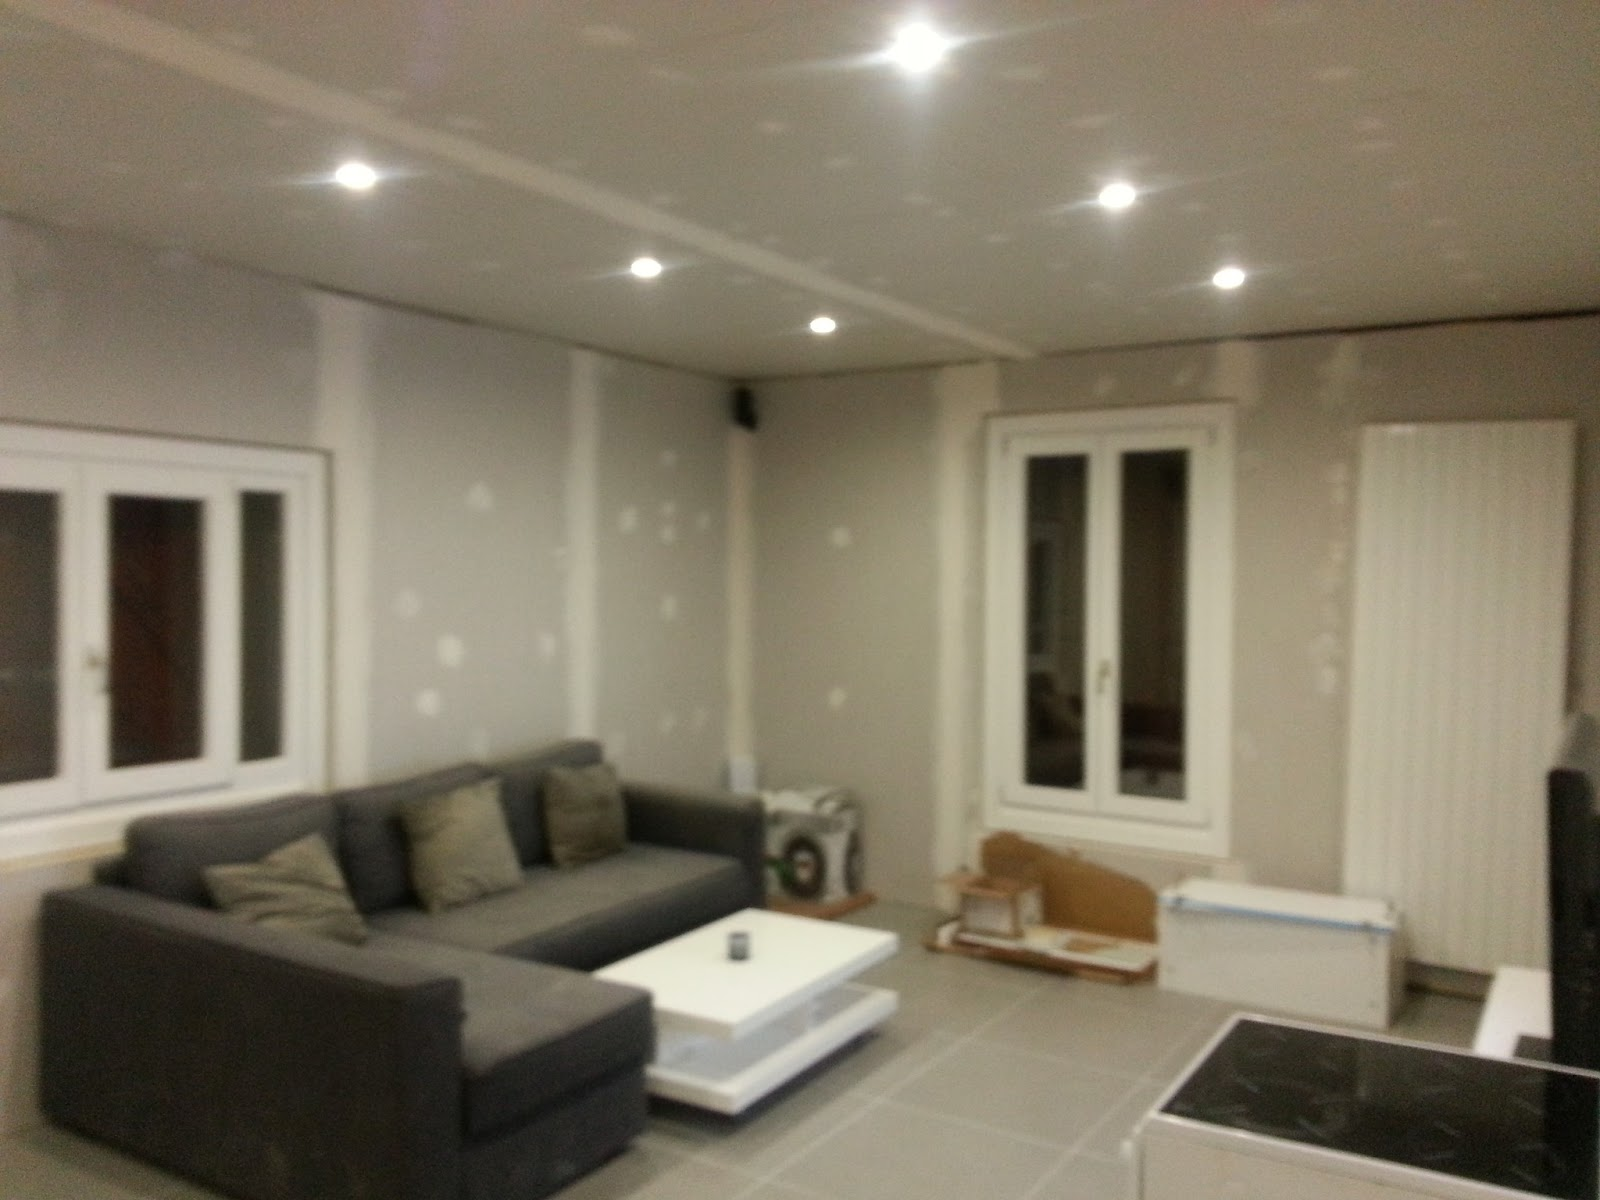 Luminaire encastrable faux plafond 600x600 grenoble cout for Decoration placoplatre salon